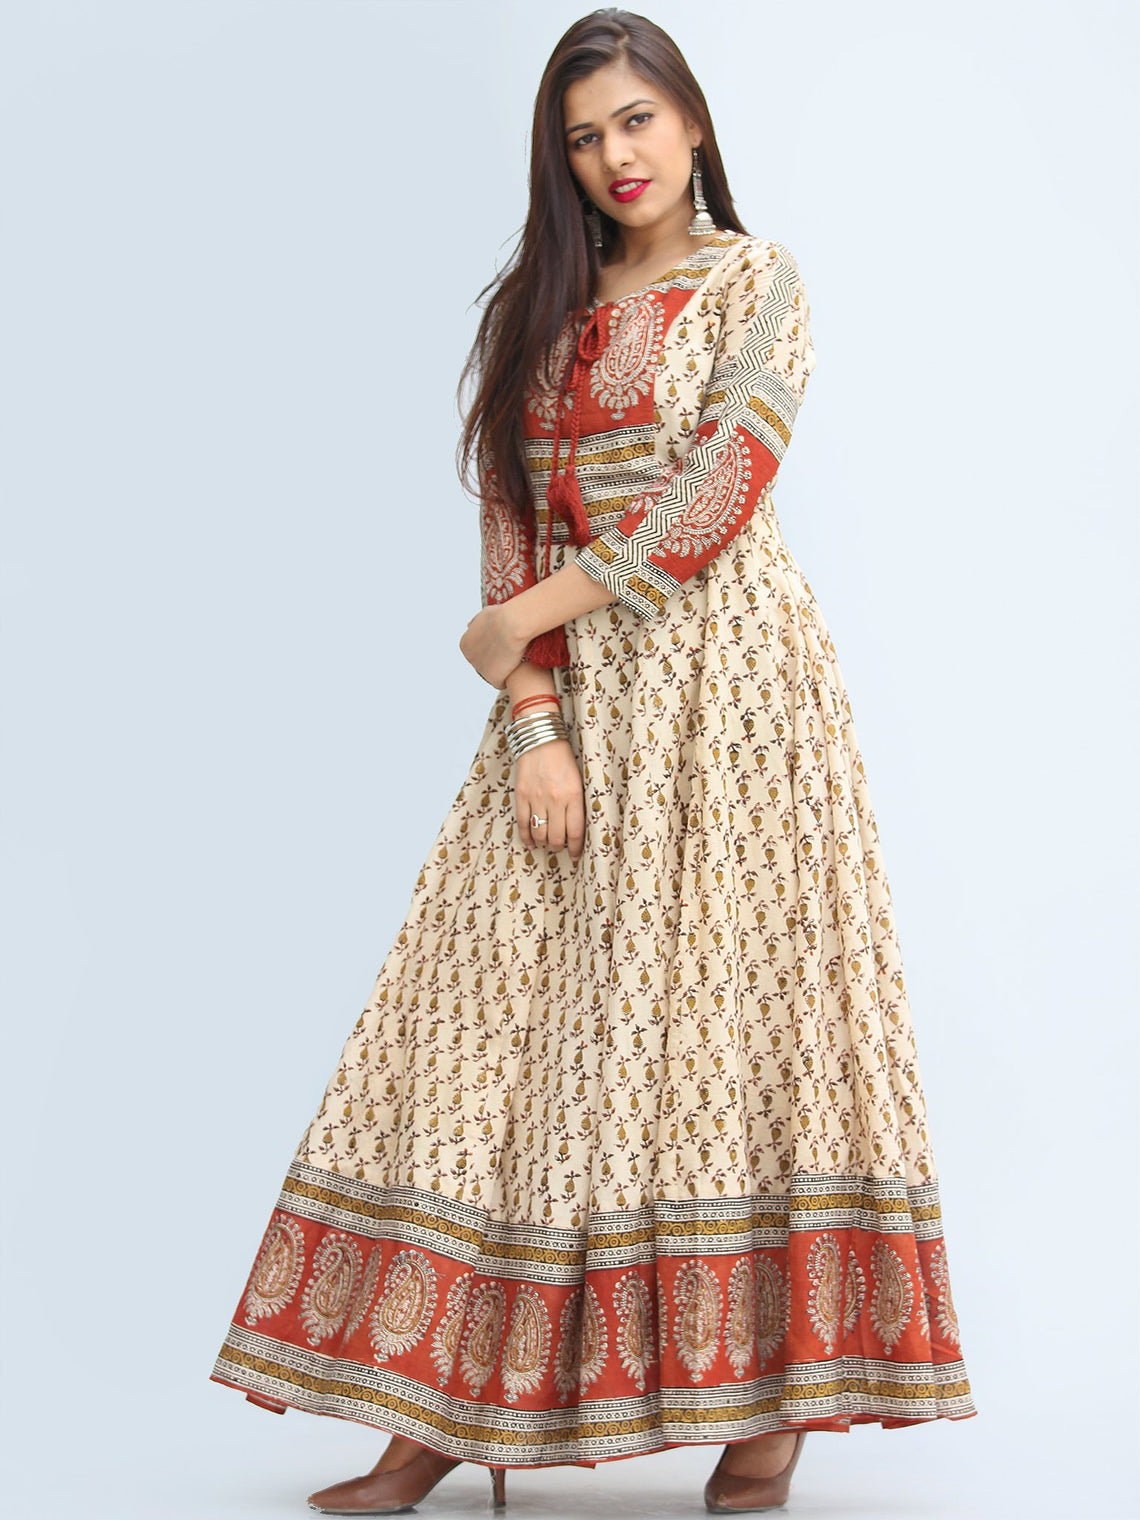 Naaz Mirza - Hand Block Printed Long Cotton Dress With Lining - DS06F003